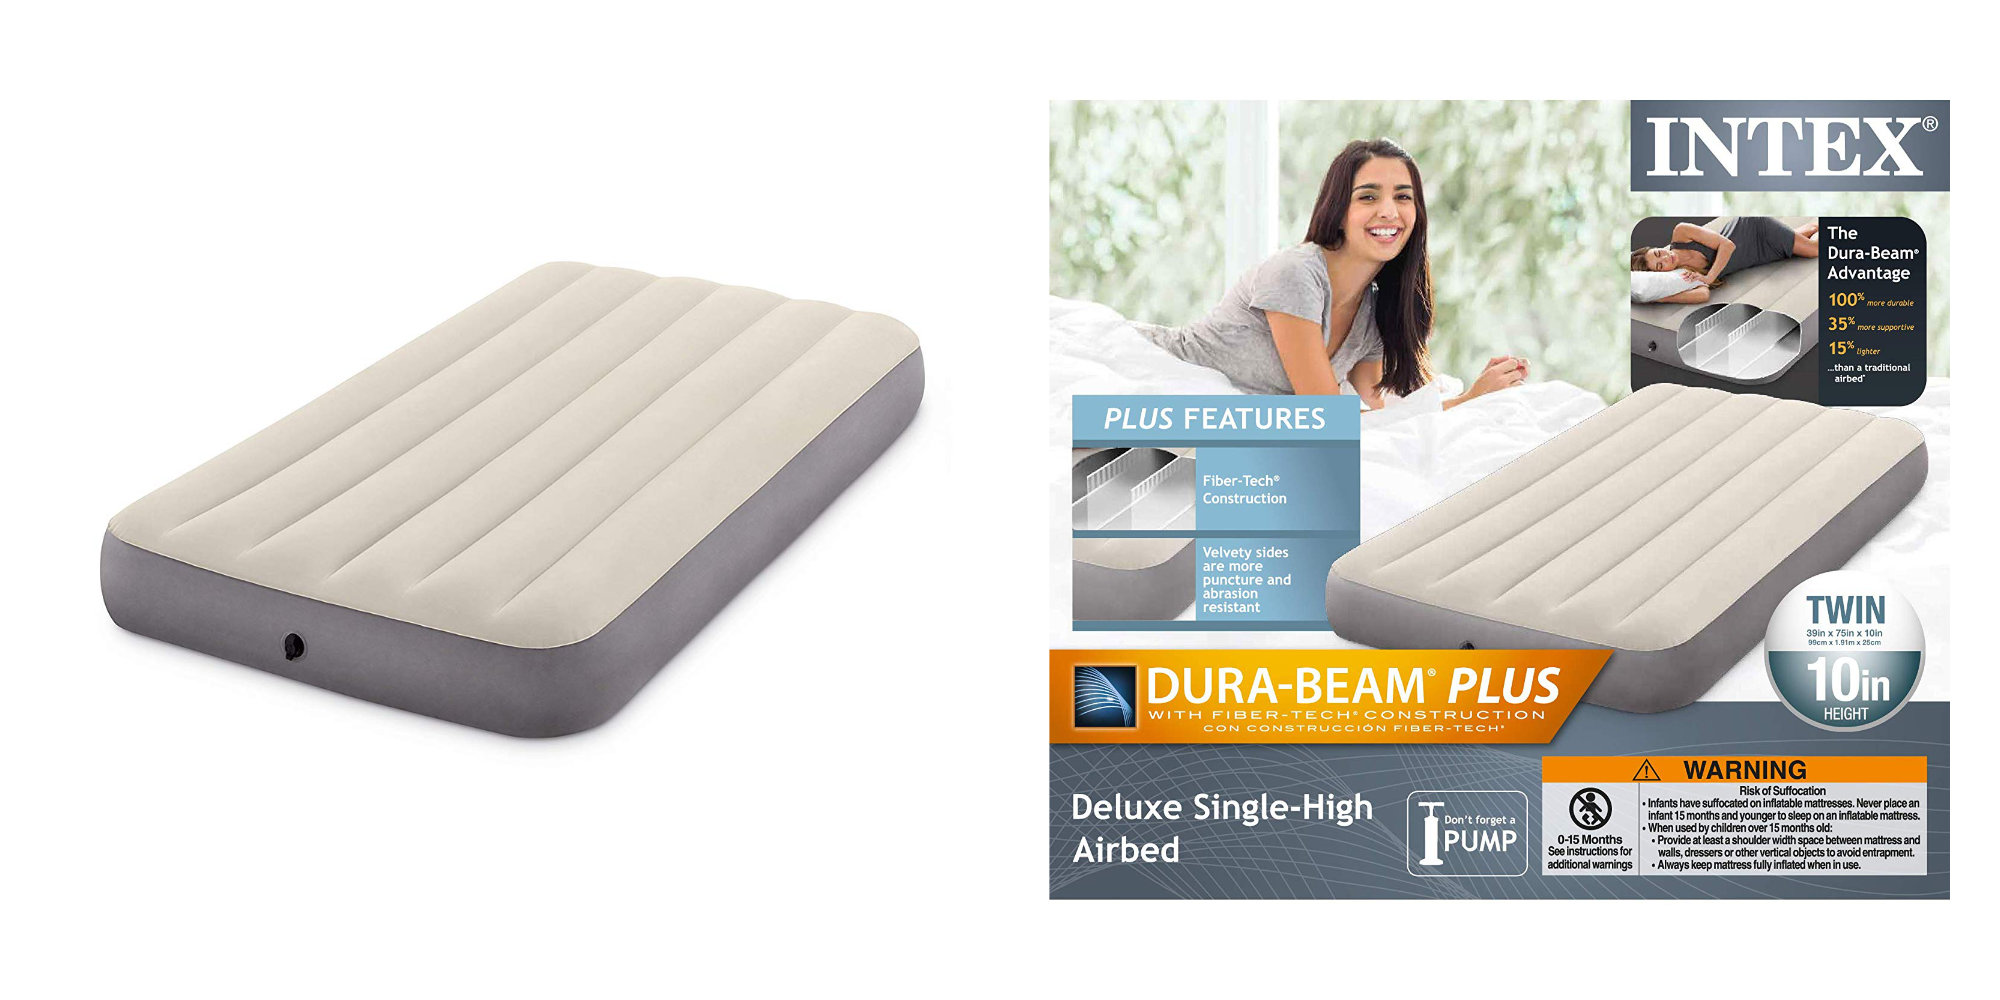 Just $10 will score you an Intex Deluxe Twin Airbed at Amazon (Save 33%)